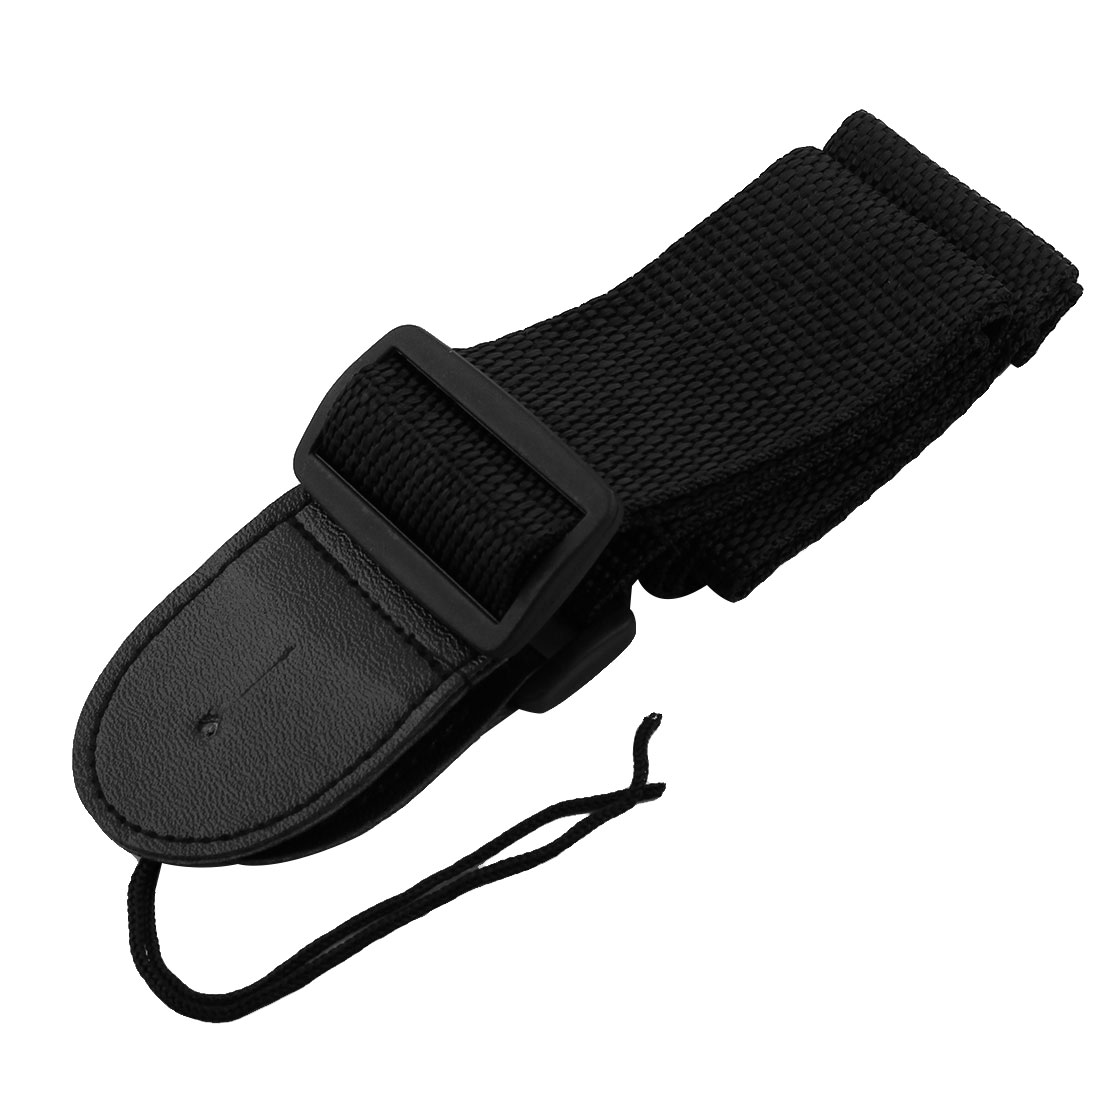 Comfort Blk Nylon Guitar Shoulder Band Strap Adjustable